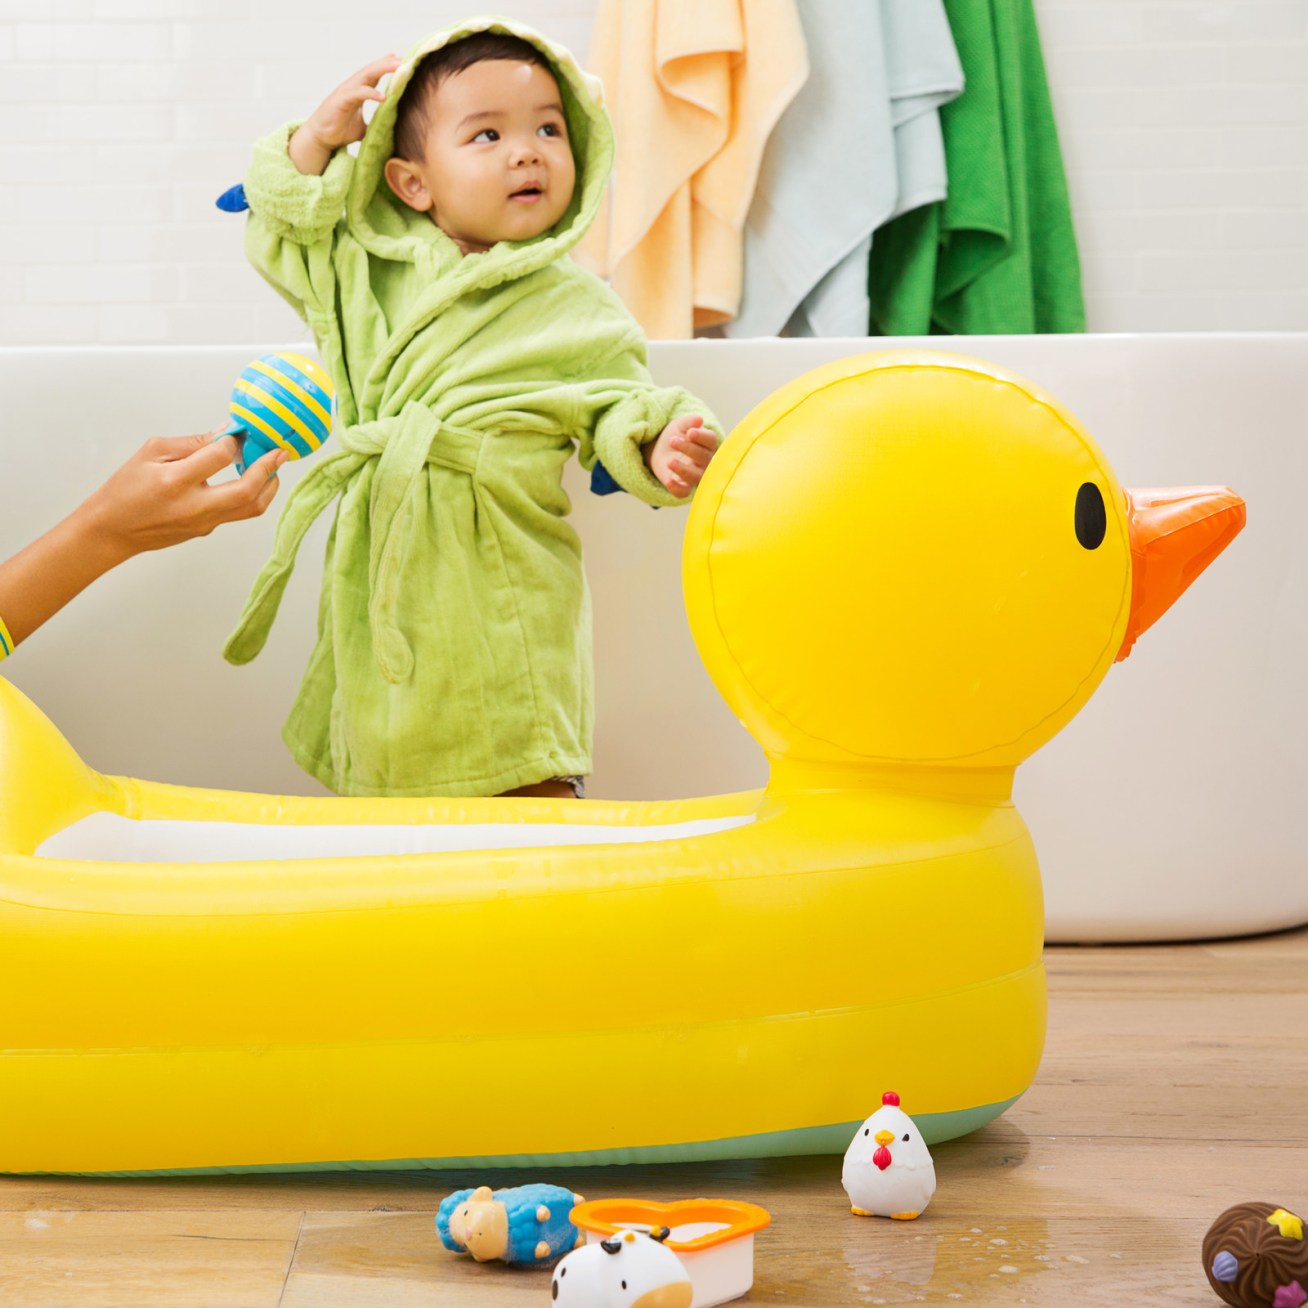 """We have a feeling this will make bath time ~so much fun~...Promising review: """"My son LOVES this tub! He can sit propped up on the side and play without me having to hold him up the whole time. He loves the quacking, and I love the built in water thermometer. I also love that after bath time, I can drain it with ease and stick it to the wall with the very convenient suction cup on the bottom, leaving plenty of room for someone else to use the bath or shower!"""" —firethearsonPrice: .95"""